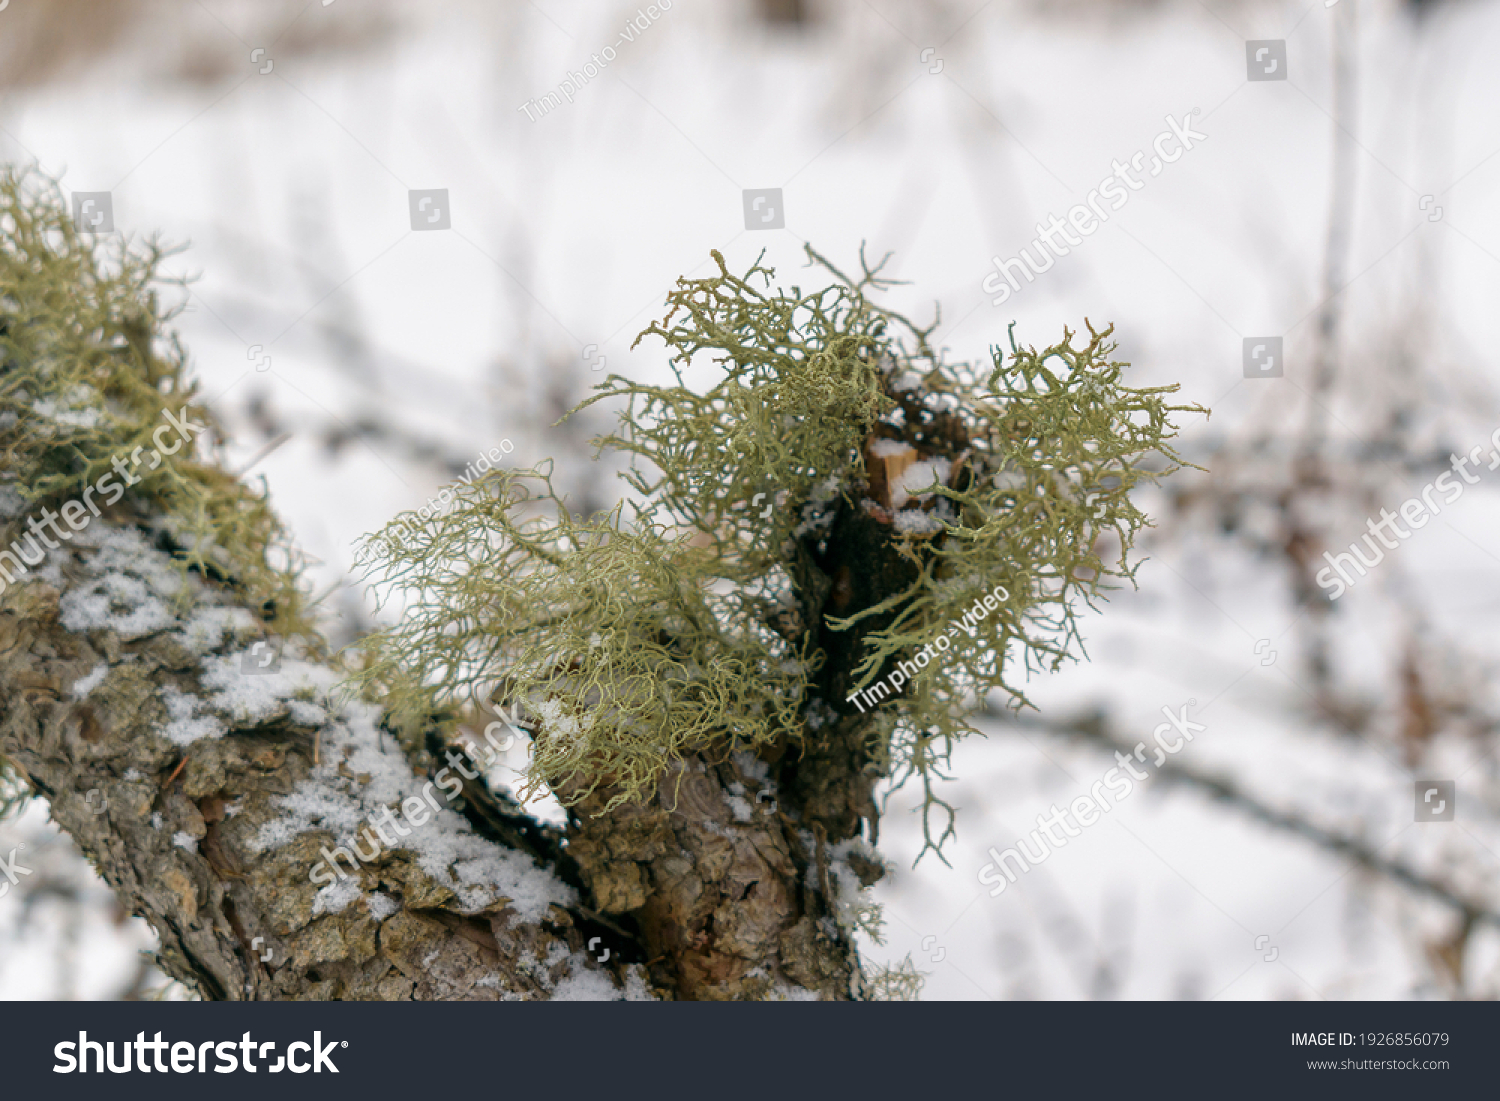 stock-photo-evernia-prunastri-on-a-tree-